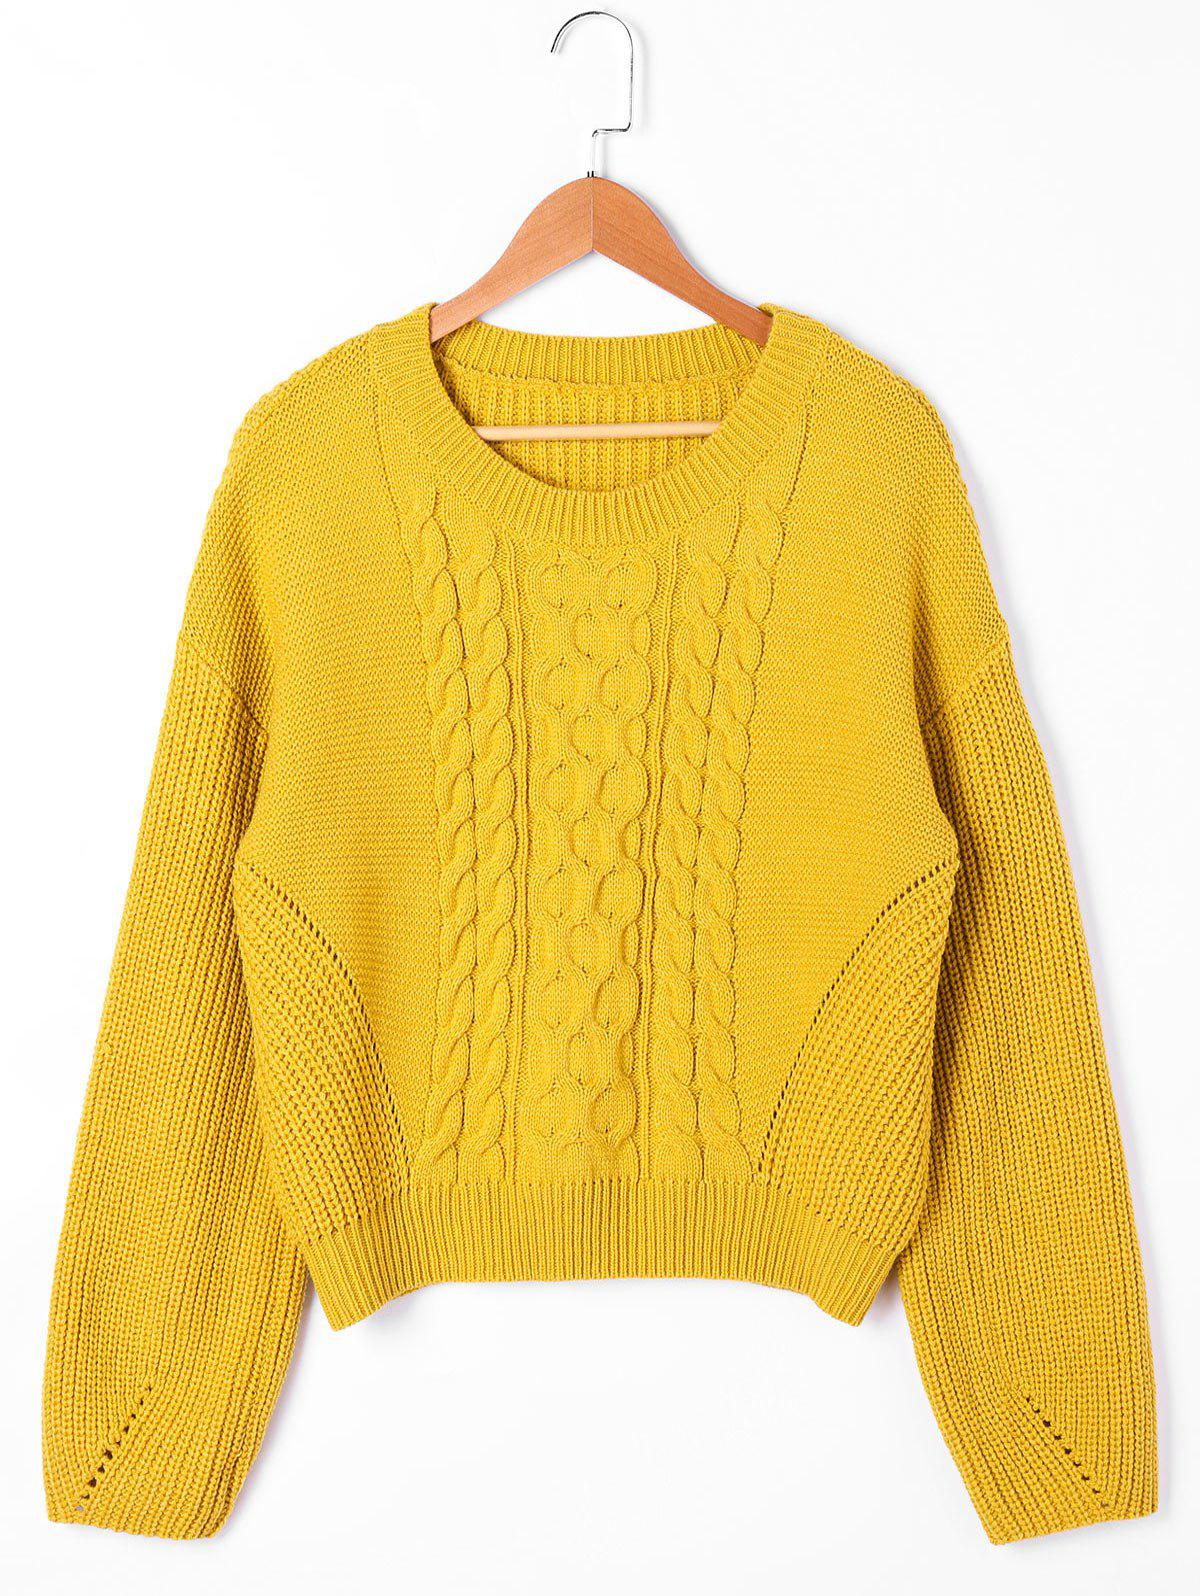 Cable Knit Drop Shoulder SweaterWOMEN<br><br>Size: M; Color: YELLOW; Type: Pullovers; Material: Acrylic; Sleeve Length: Full; Collar: Round Neck; Style: Casual; Pattern Type: Solid; Season: Fall,Spring,Winter; Weight: 0.5000kg; Package Contents: 1 x Sweater;